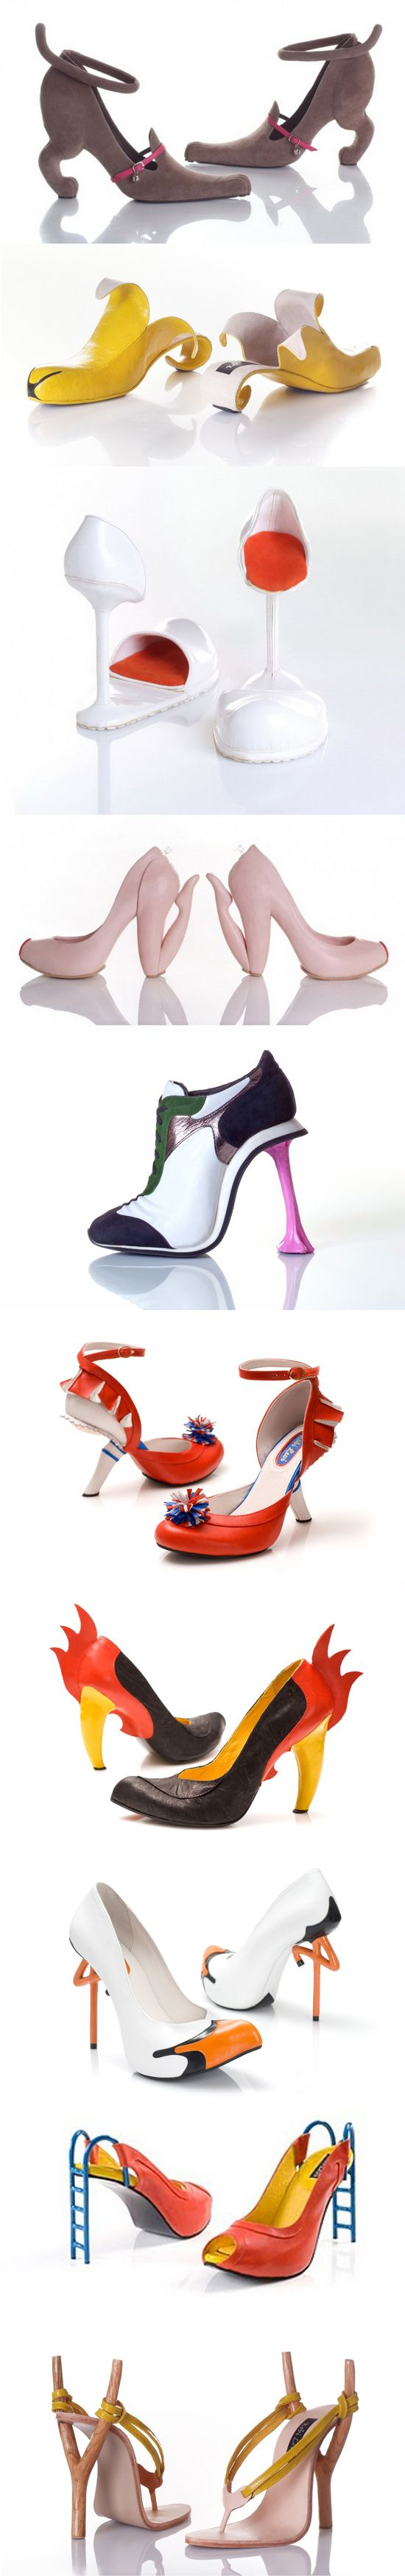 Weird 10 amazing shoes and footwear designed by Kobi Levi The